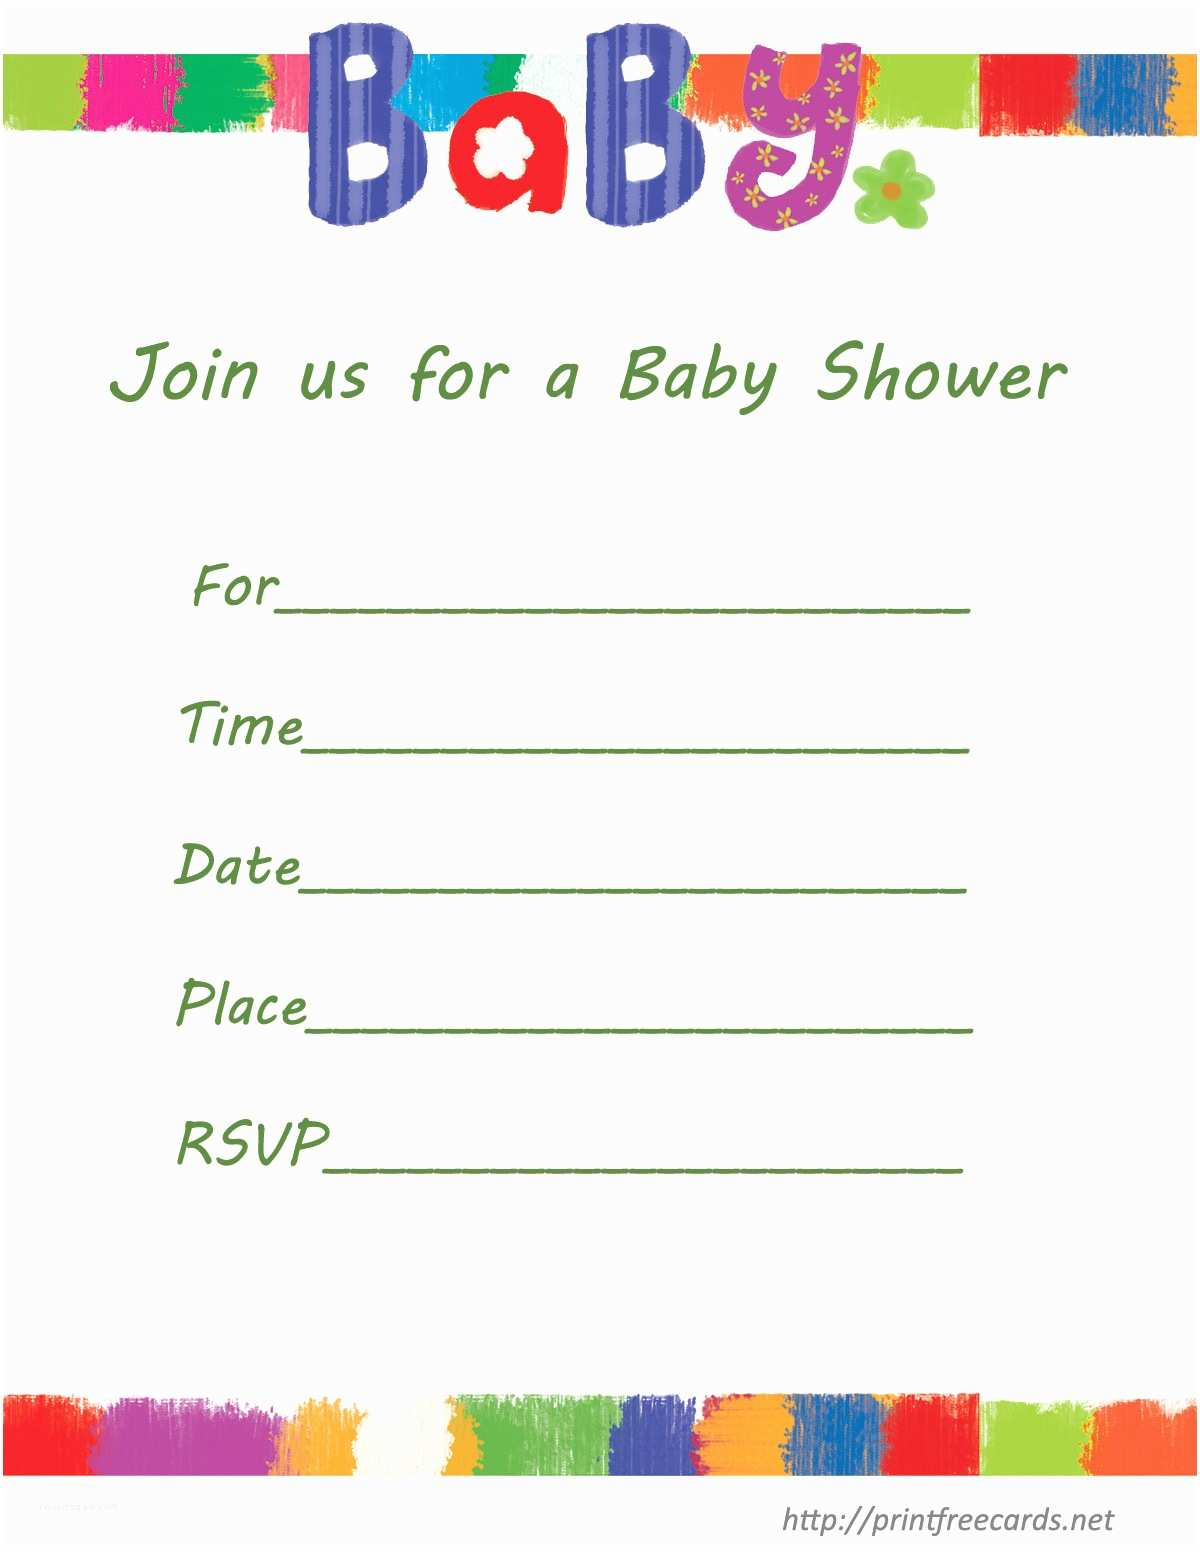 Free Downloadable Baby Shower Invitations Free Printable Baby Shower Invitations Templates